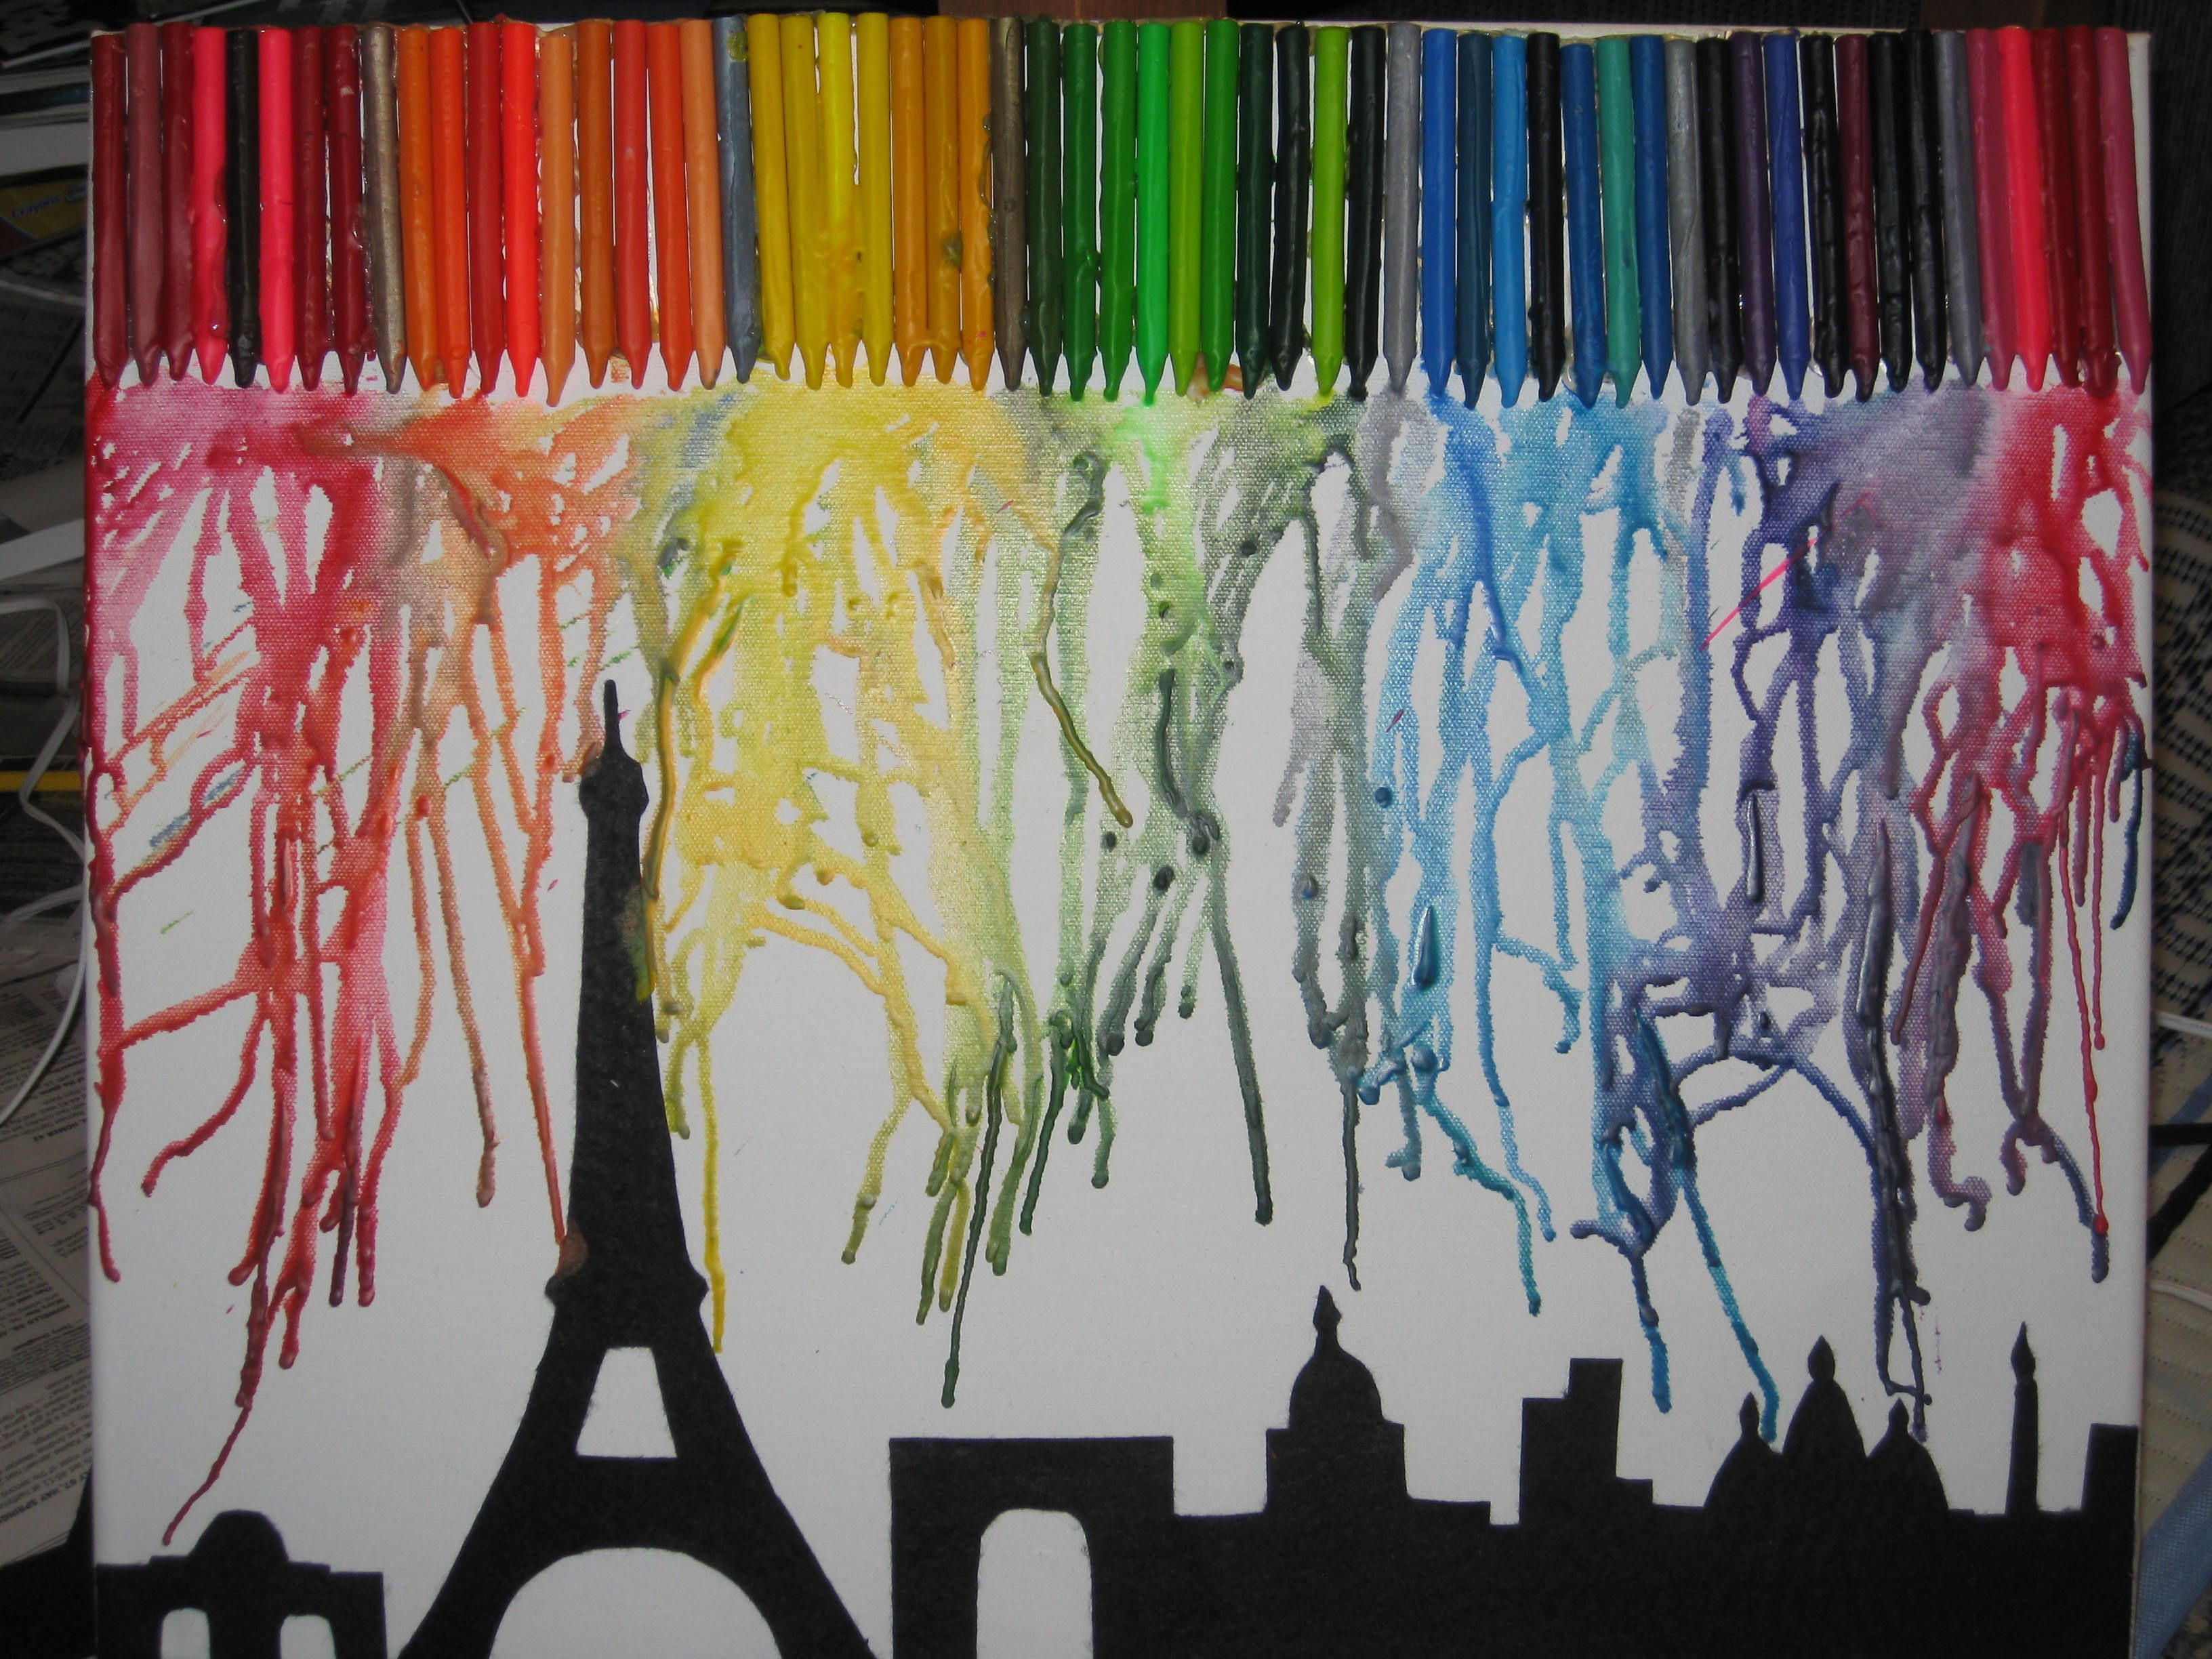 I Want To Play With Melting Crayons Like This